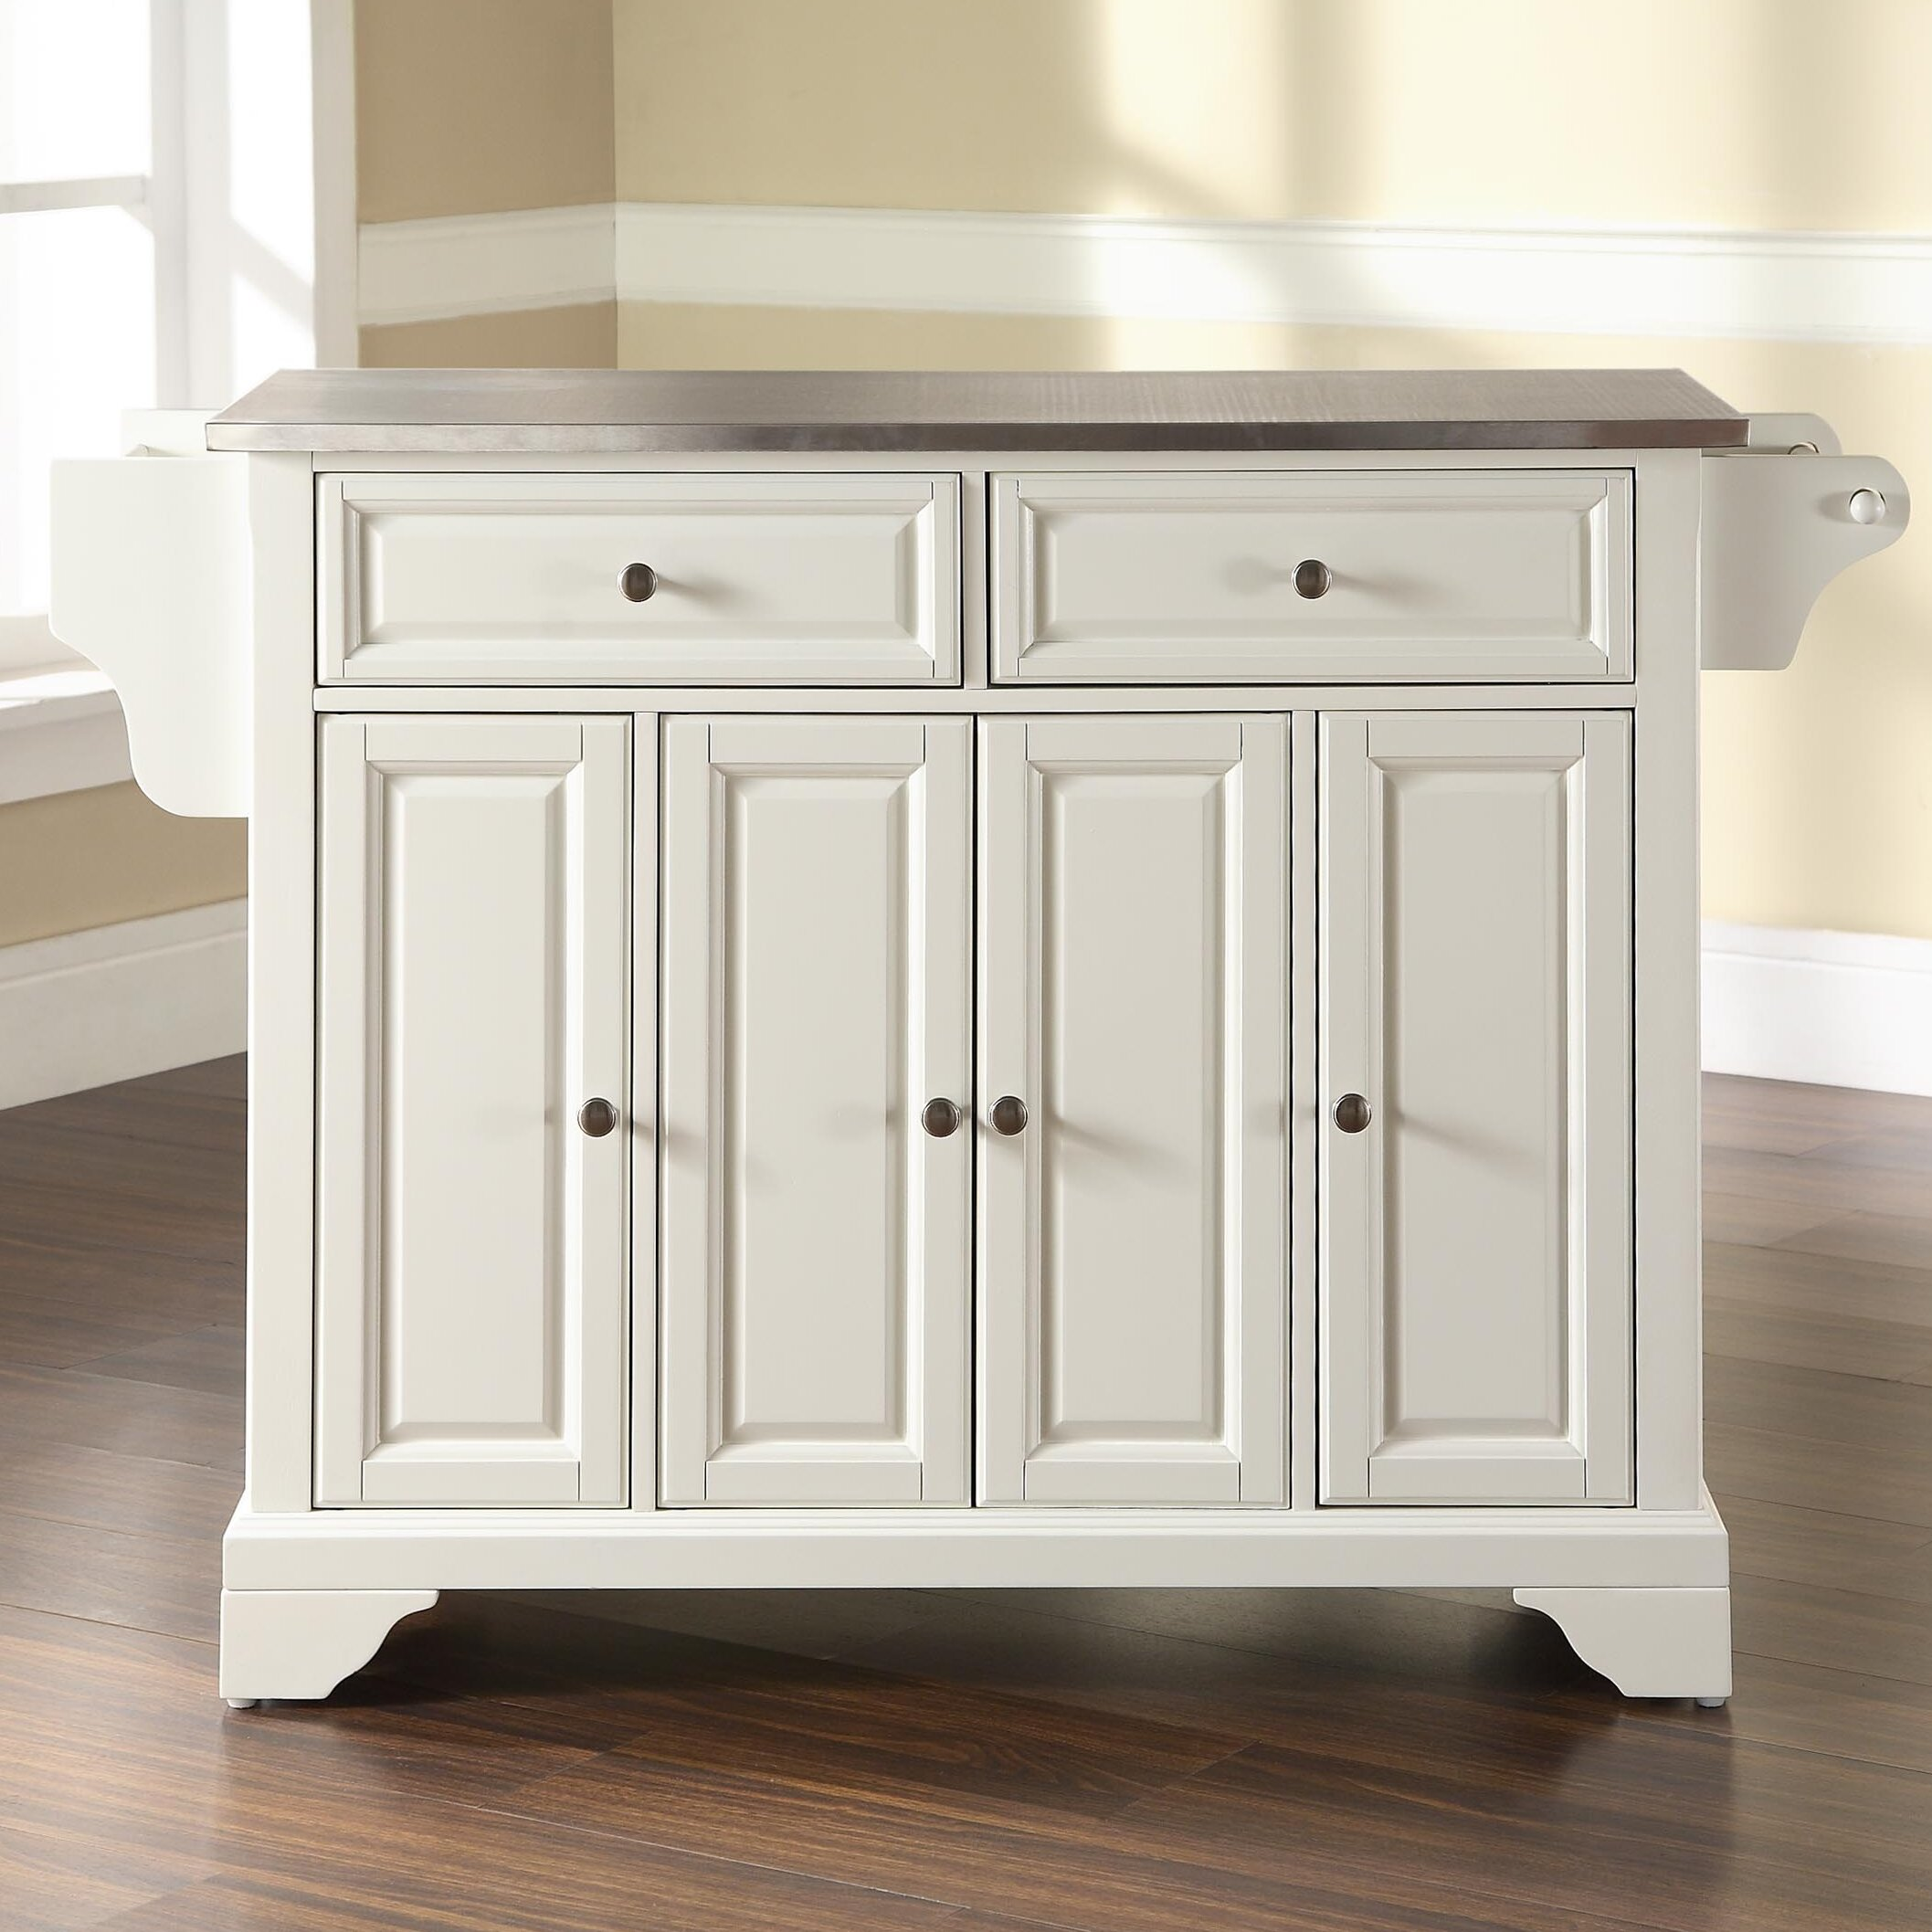 Crosley Lafayette Kitchen Island With Stainless Steel Top Reviews Wayfair